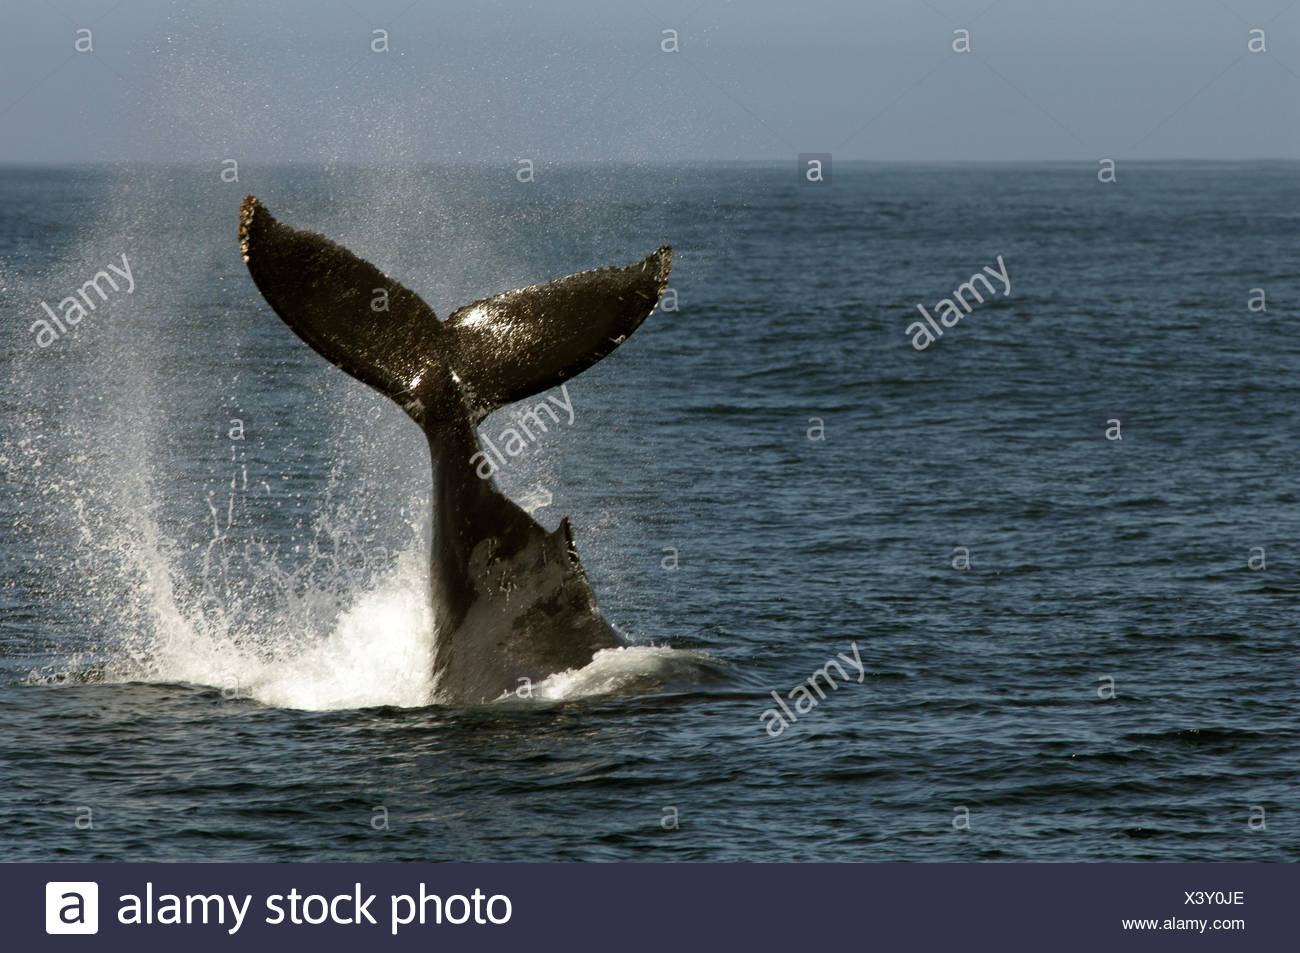 This humpback whale photographed in California (Monterey Bay) was slapping its tail on water They do this to get rid parasites - Stock Image